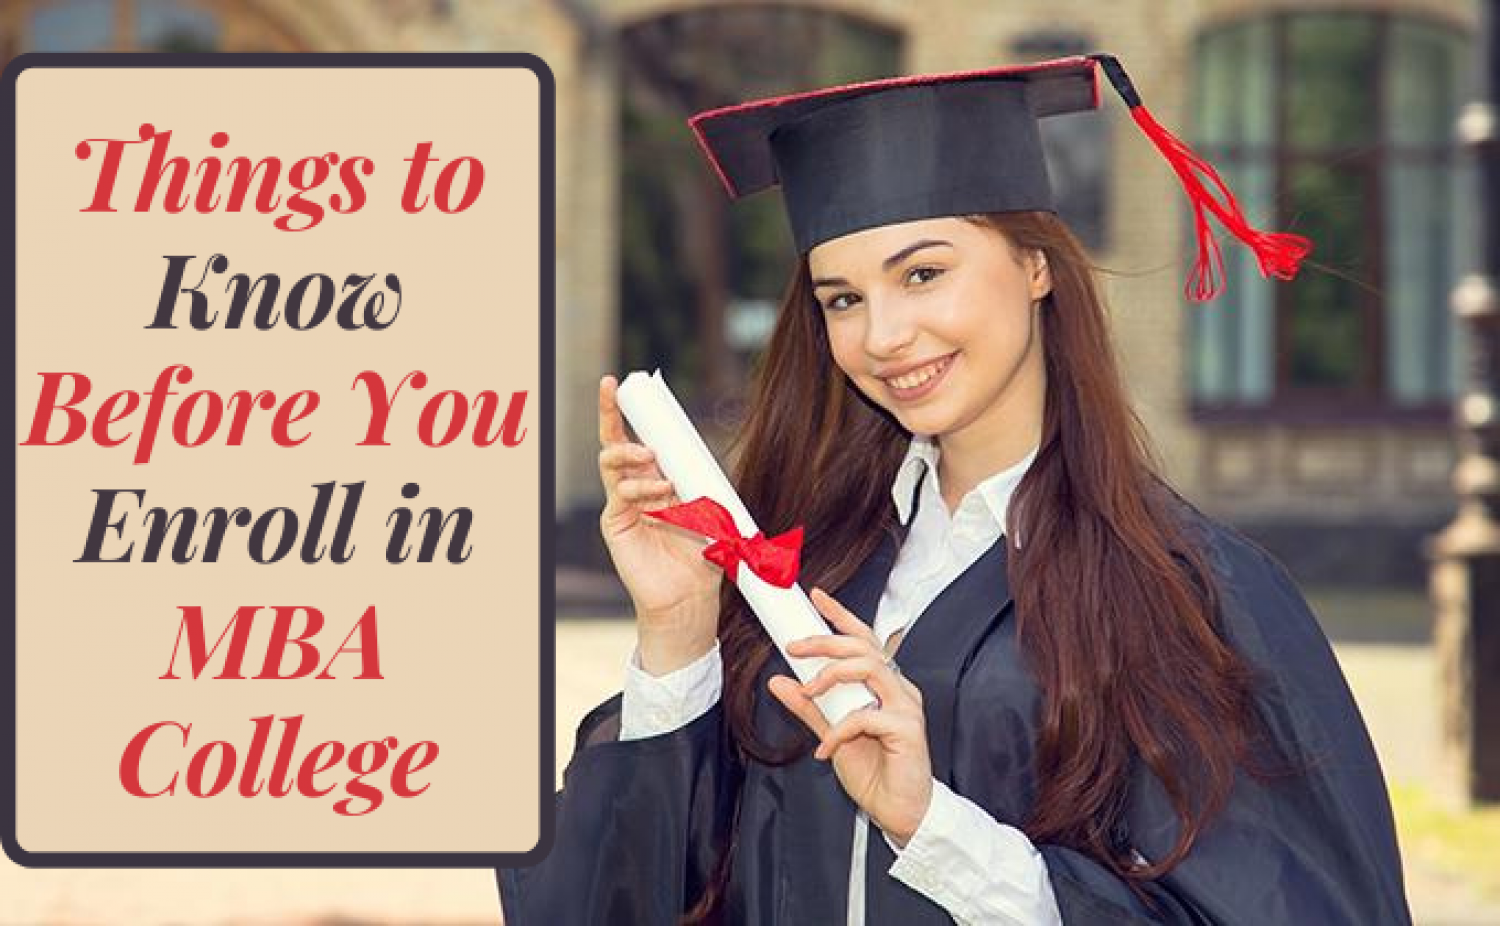 What Are The Things To Know Before You Enroll in MBA College? Infographic